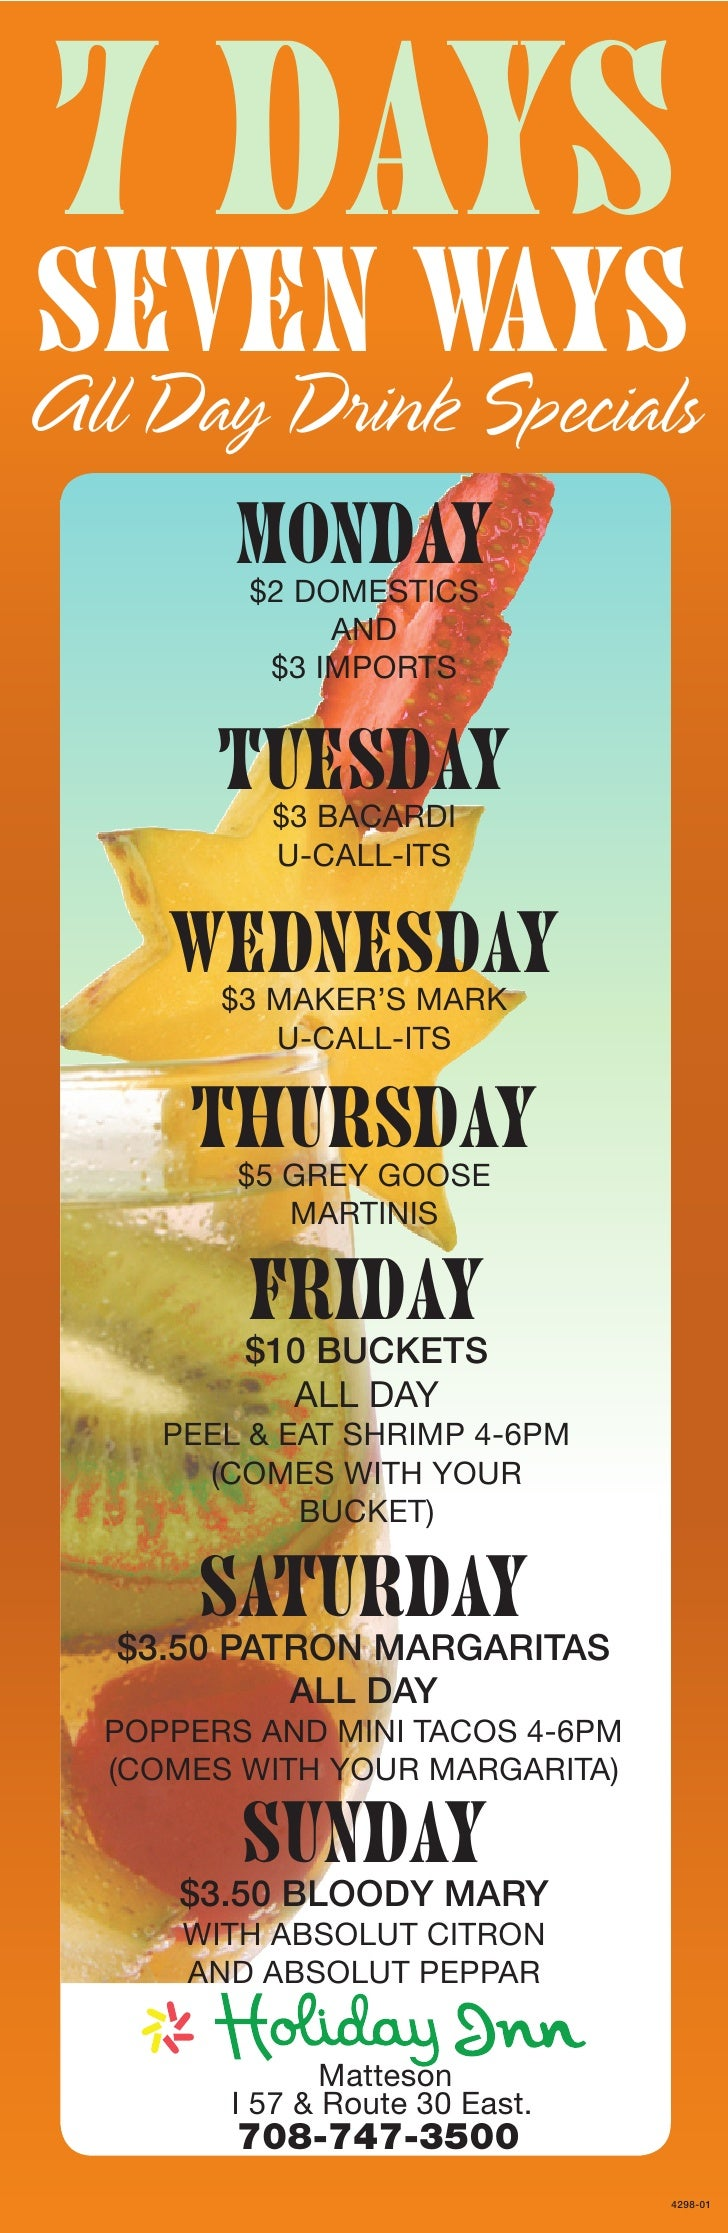 7 Days Seven Ways All Day Drink Specials          Monday          $2 DOMESTICS               AND           $3 IMPORTS     ...